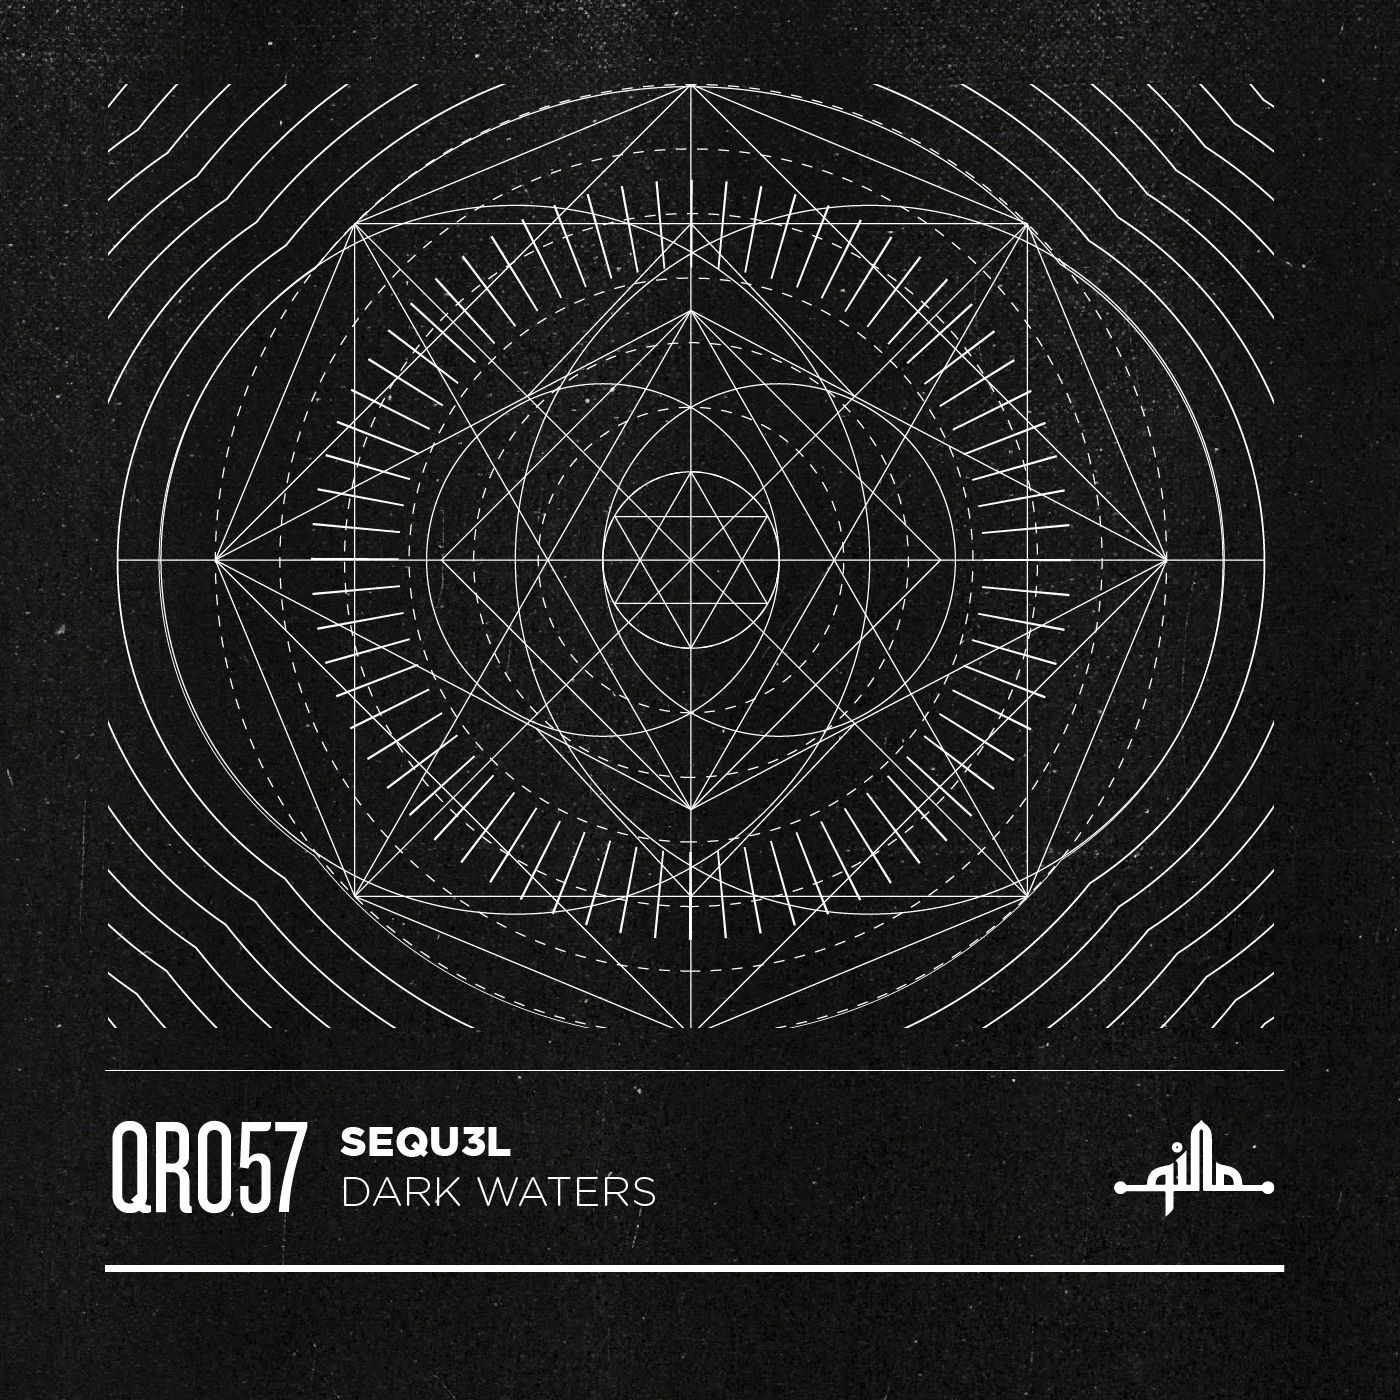 qr057_-_dark_waters_-_ep_cover.jpg